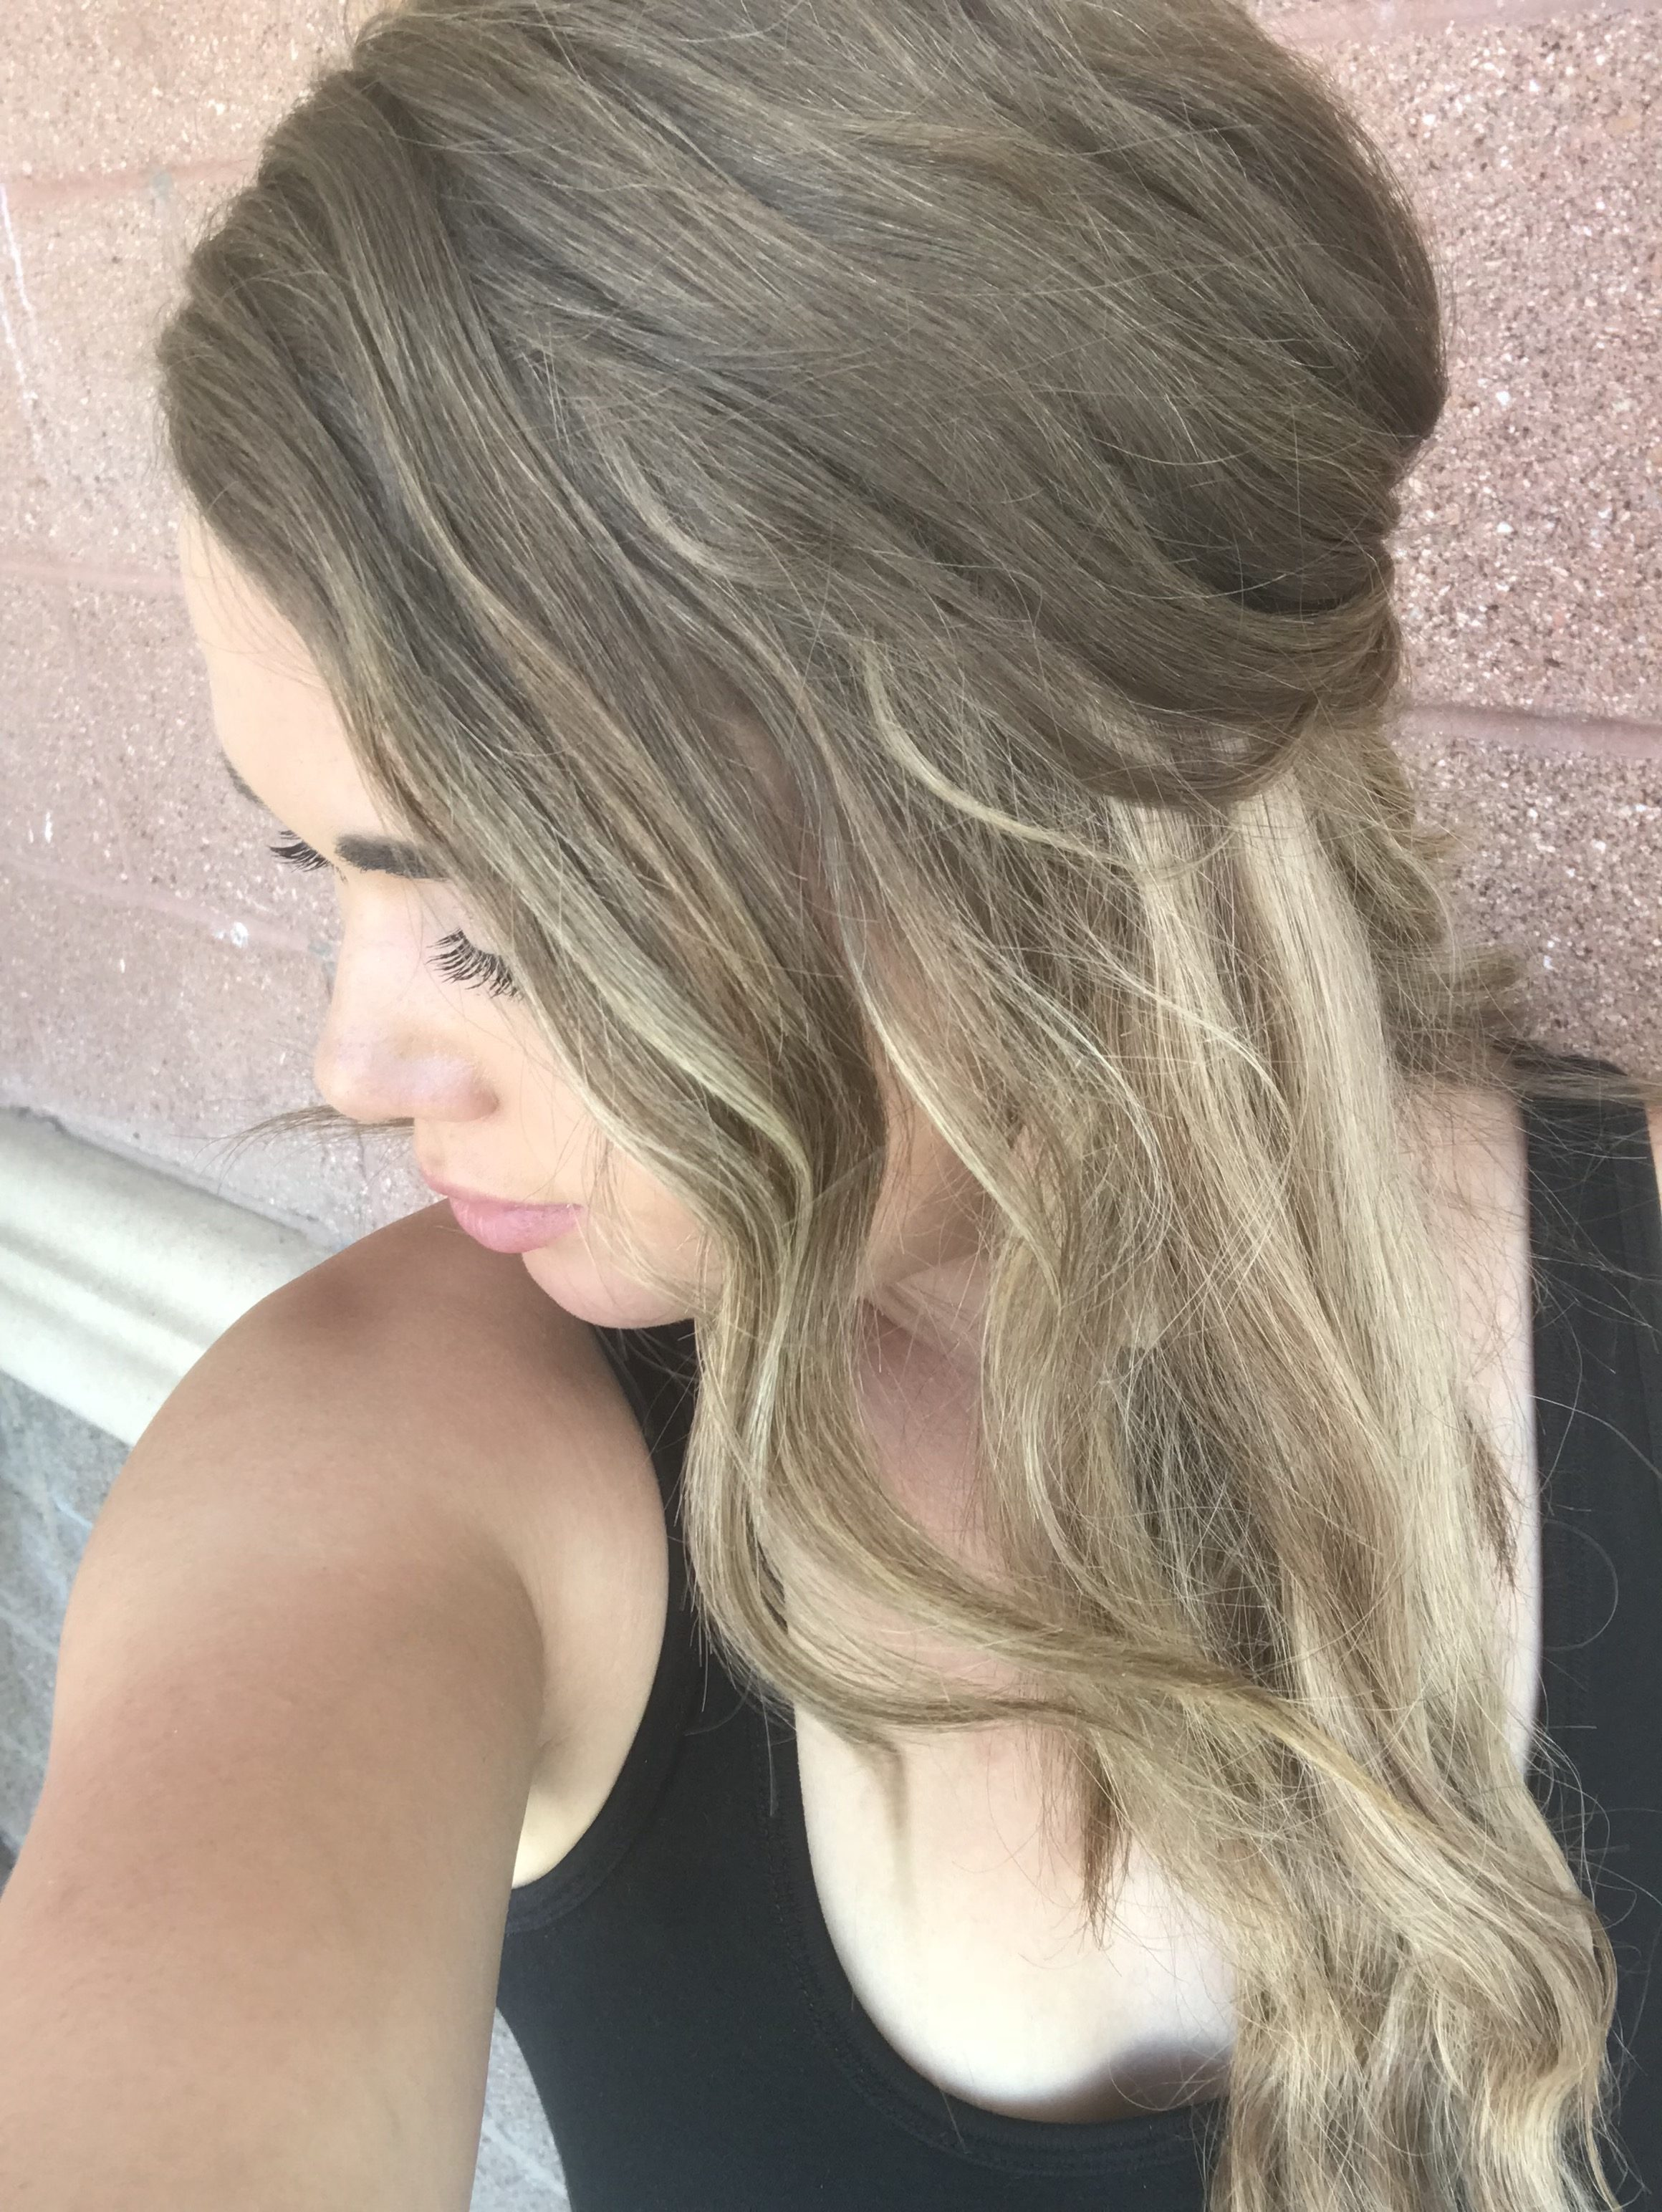 hidden crown hair extensions featured by popular Denver life and style blogger, All Things Lovely